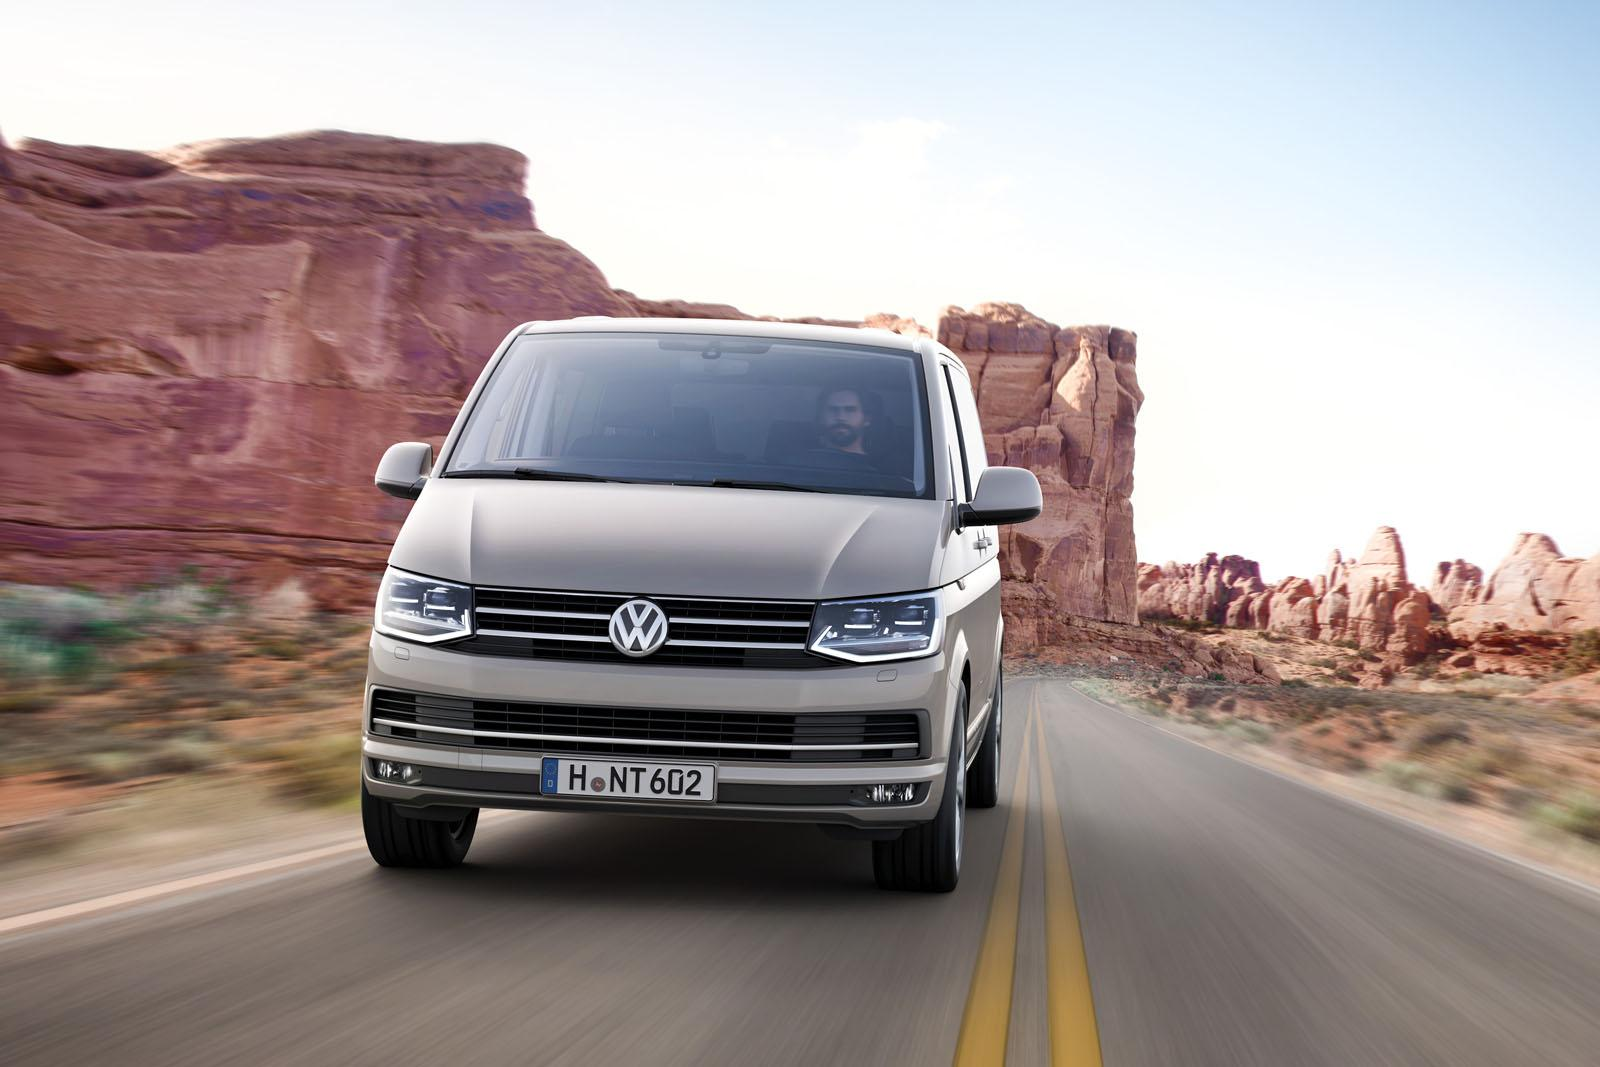 all new volkswagen transporter t6 unveiled premium multivan bulli theme autoevolution. Black Bedroom Furniture Sets. Home Design Ideas